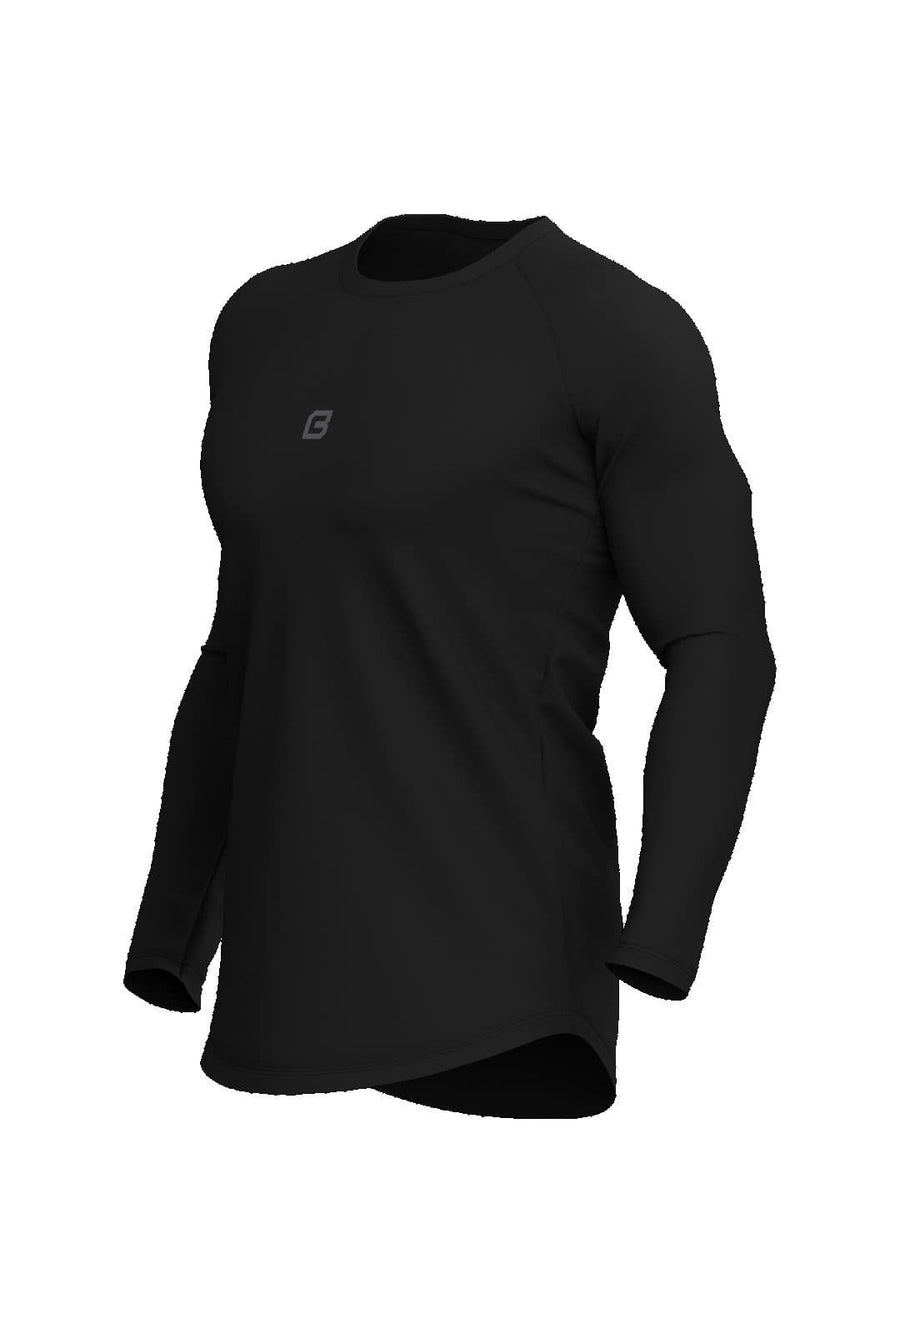 Origin Performance Long Sleeve - Midnight Black - Bodcraft